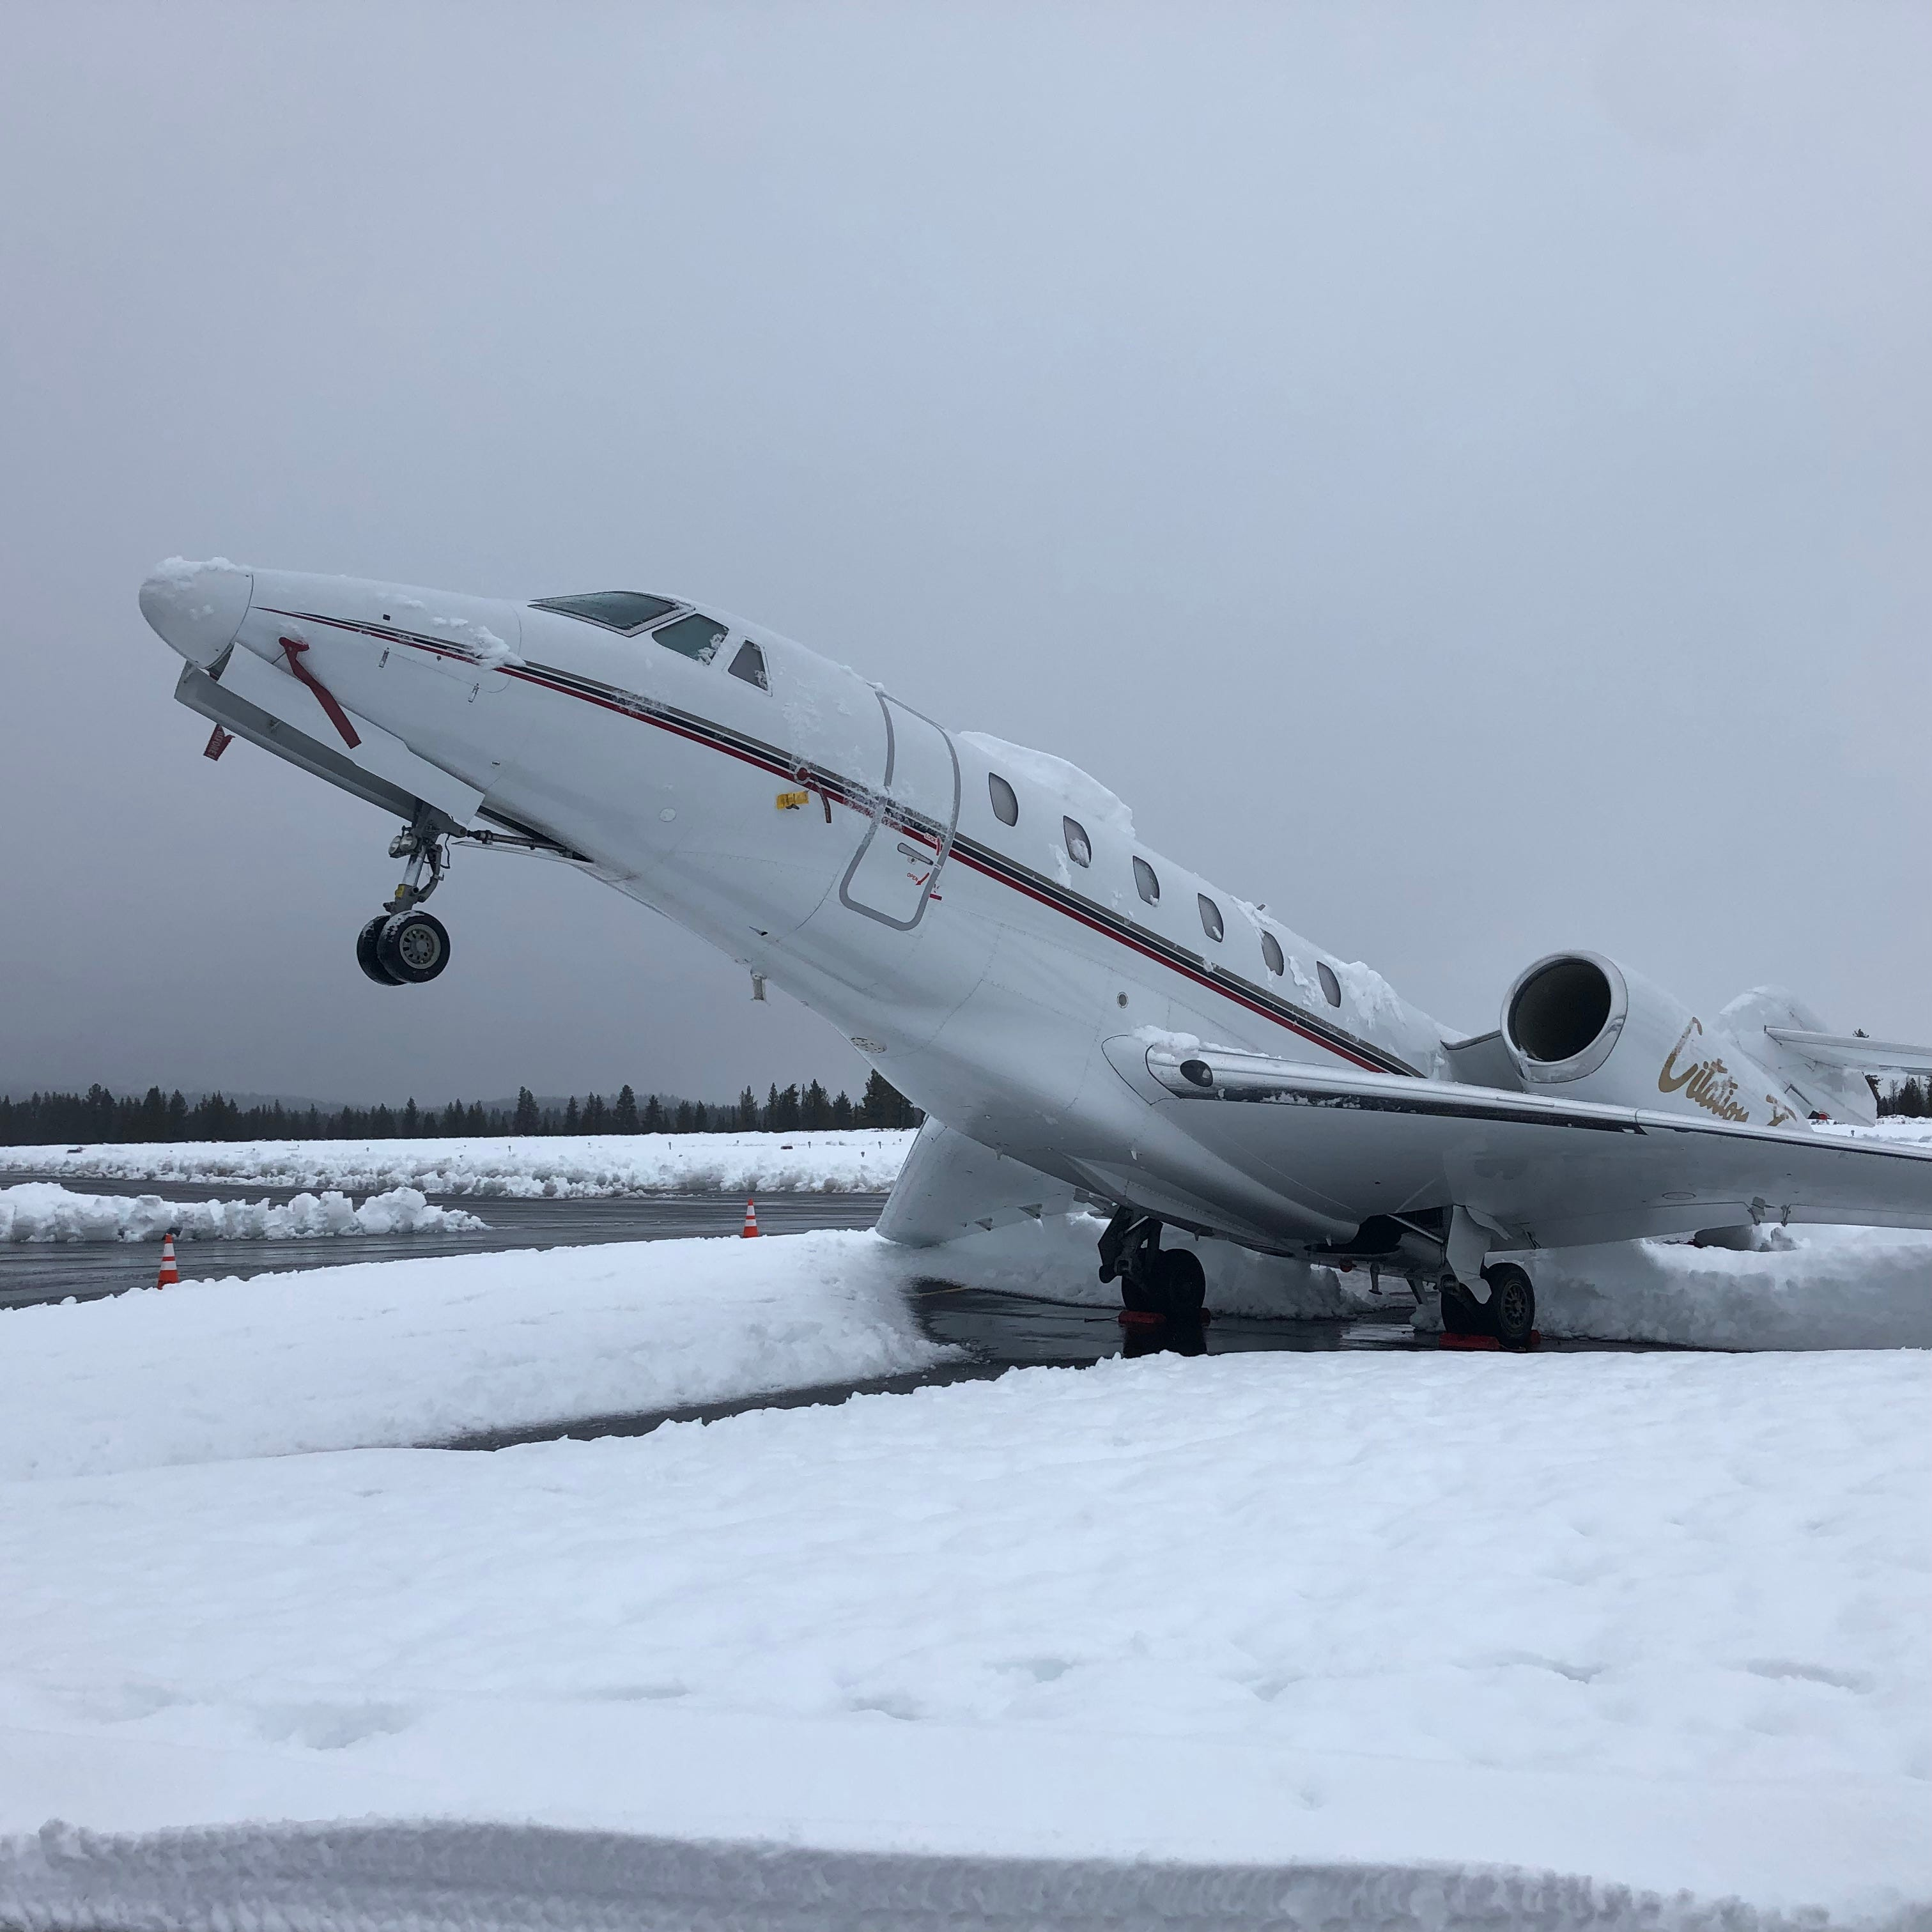 Heavy 'Sierra cement' snow causes business jet to pull stationary wheelie at Truckee airport